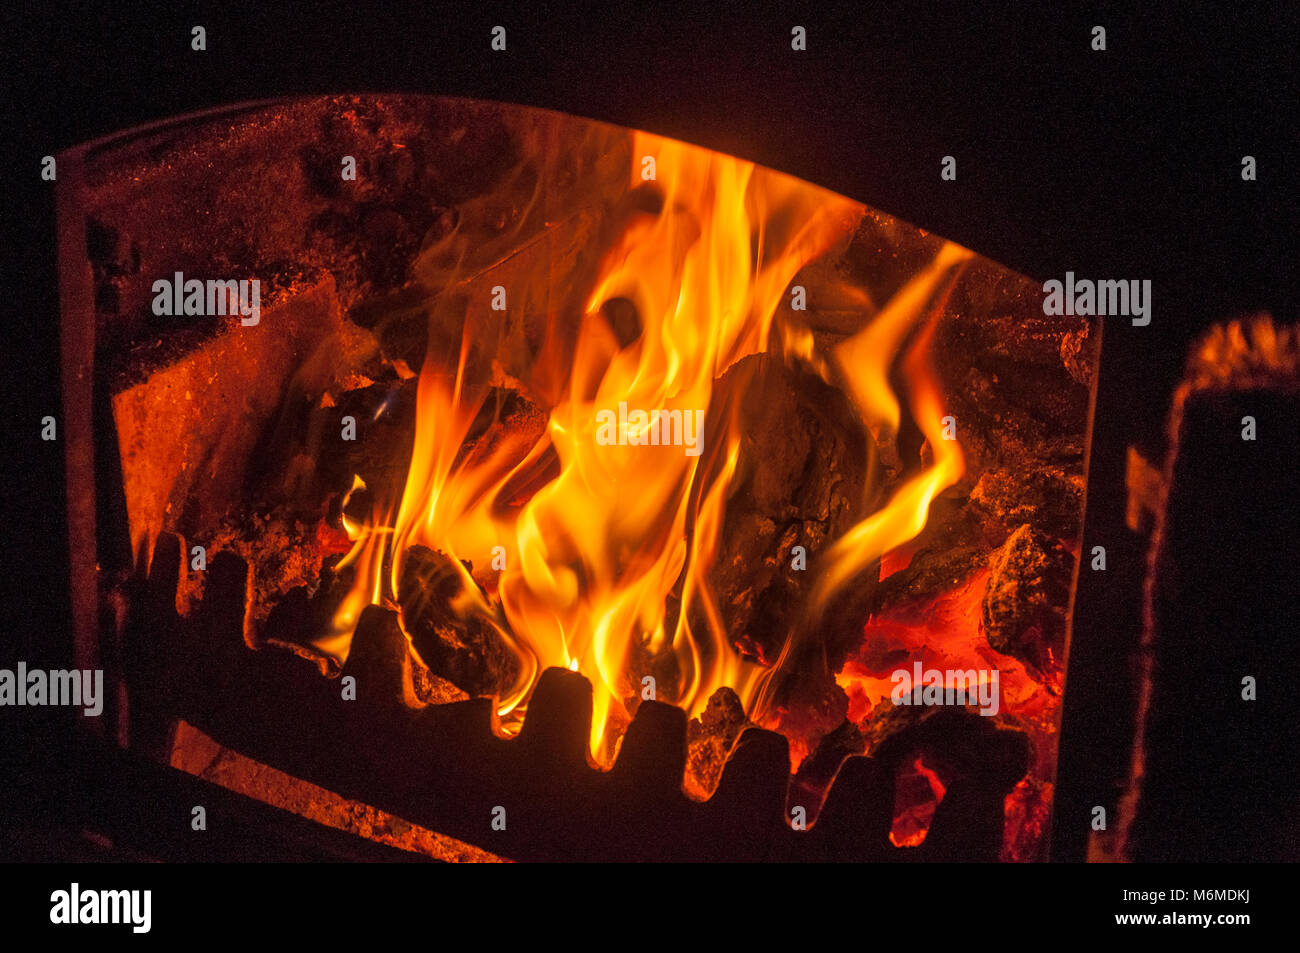 Burning coal and wood in a metal stove - Stock Image